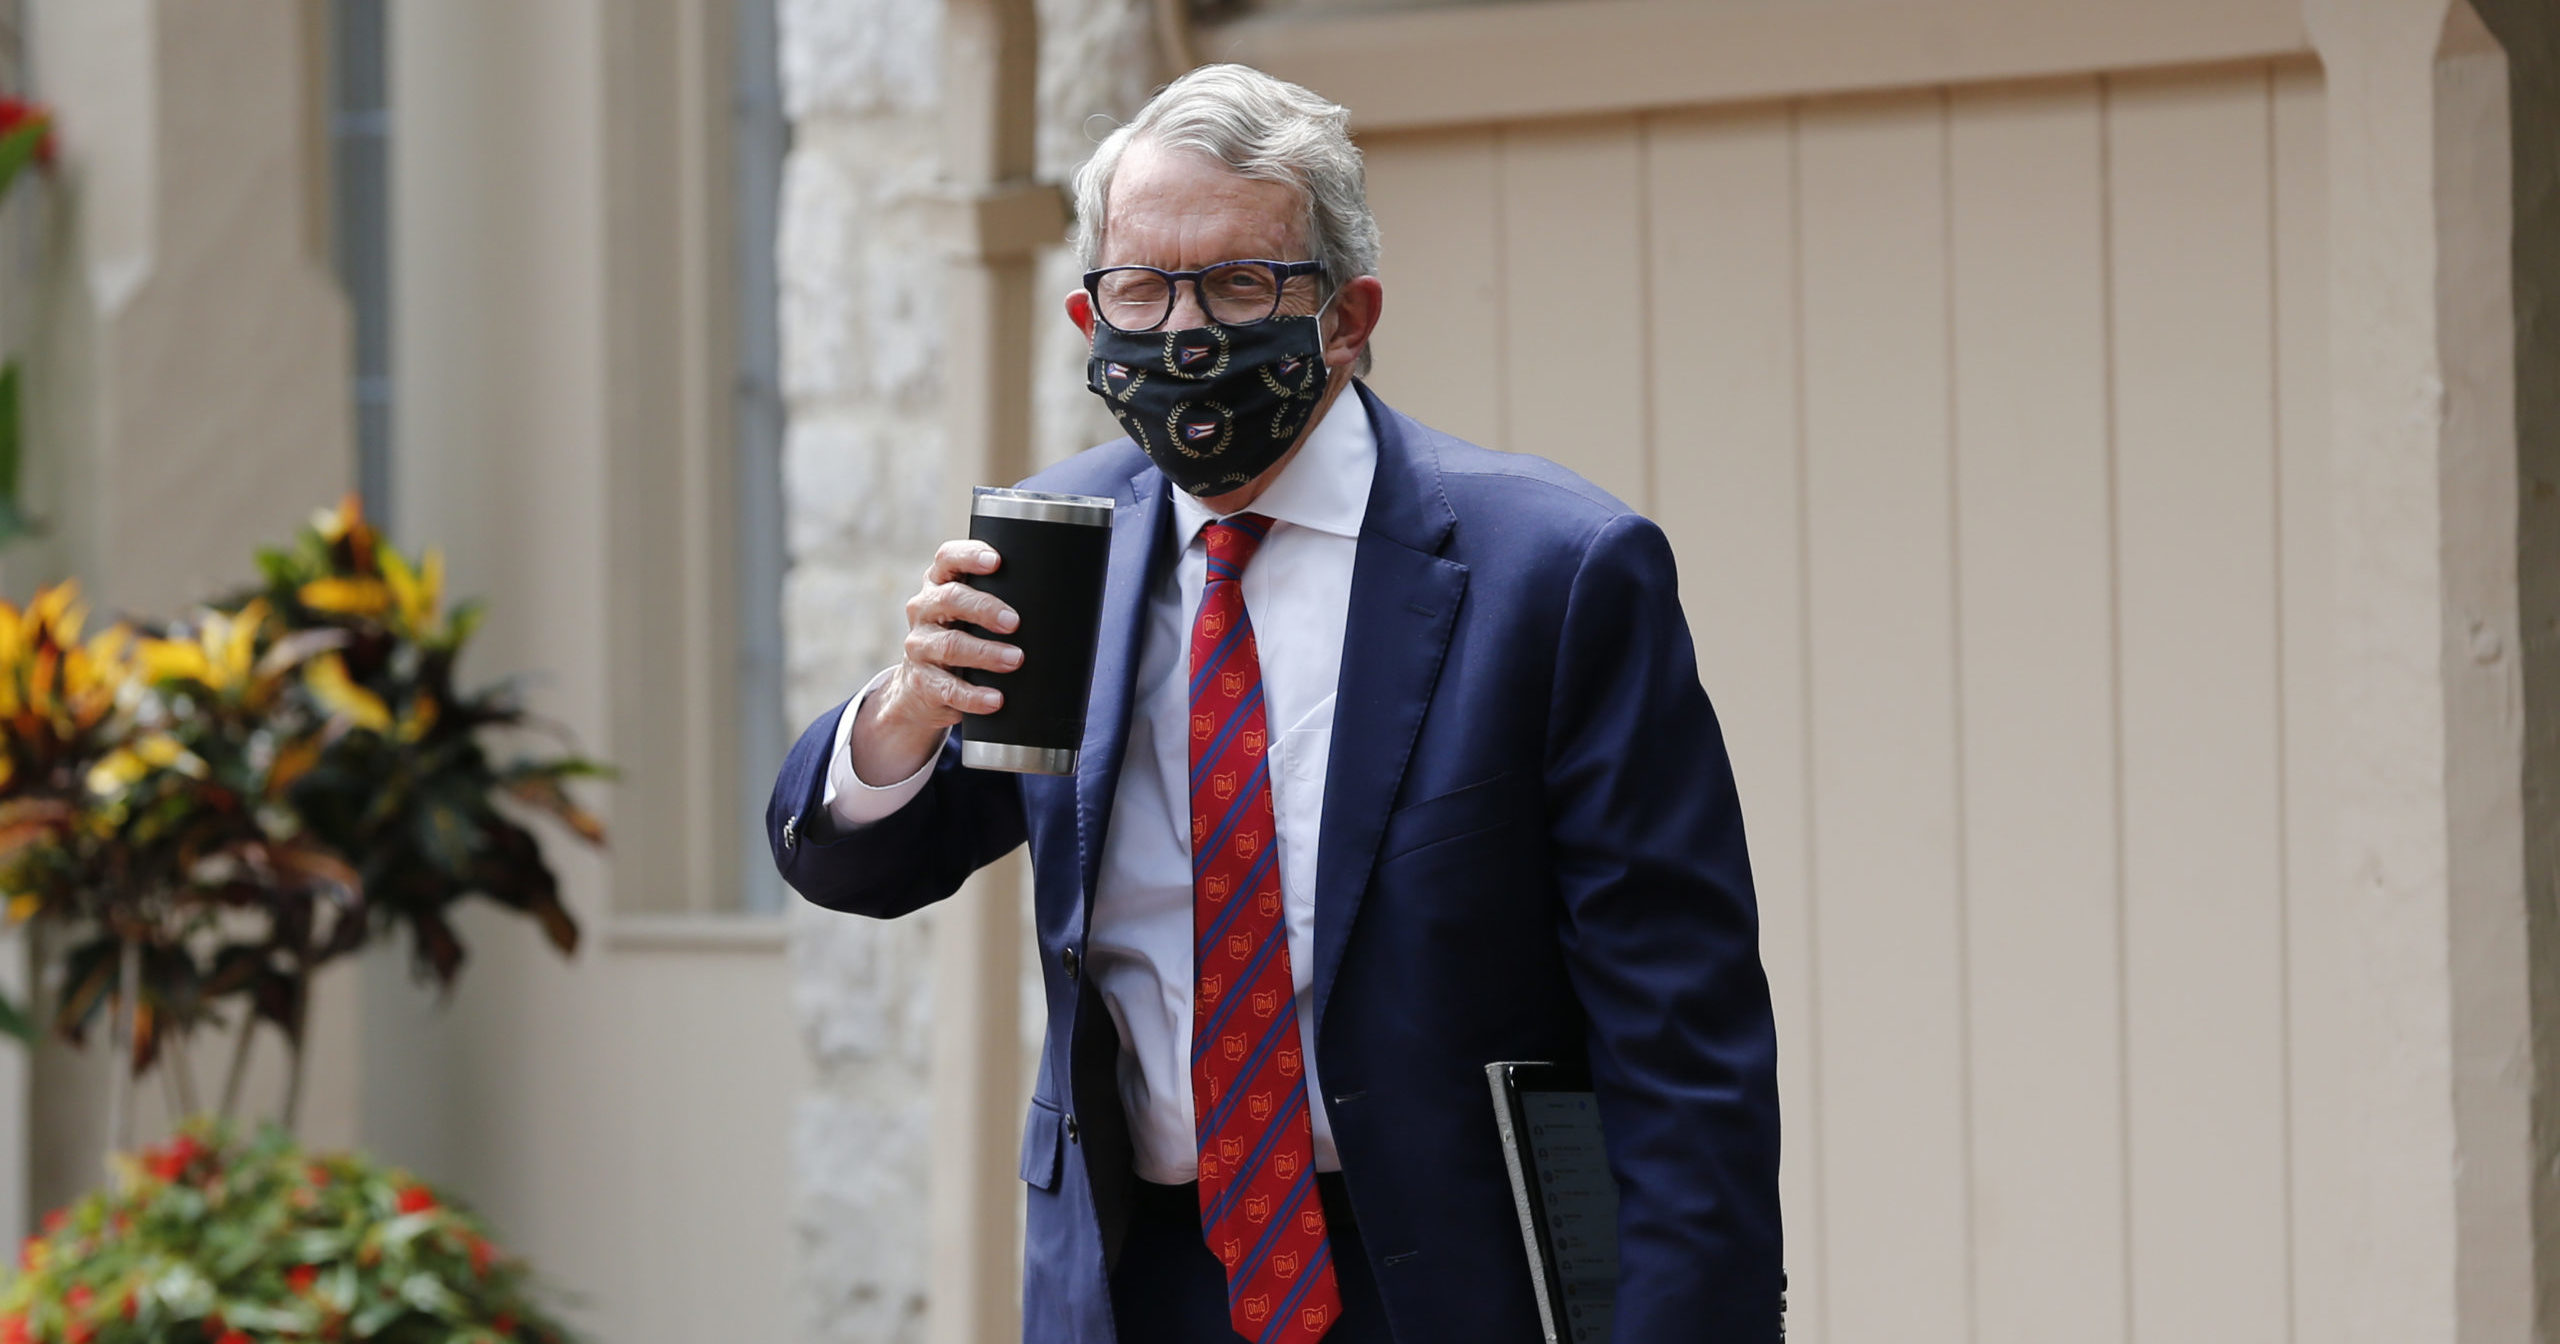 Ohio Gov. Mike DeWine acknowledges members of the media while entering his residence after testing positive for COVID-19 on Aug. 6, 2020, in Bexley, Ohio. DeWine tested negative later in the day using a different test.